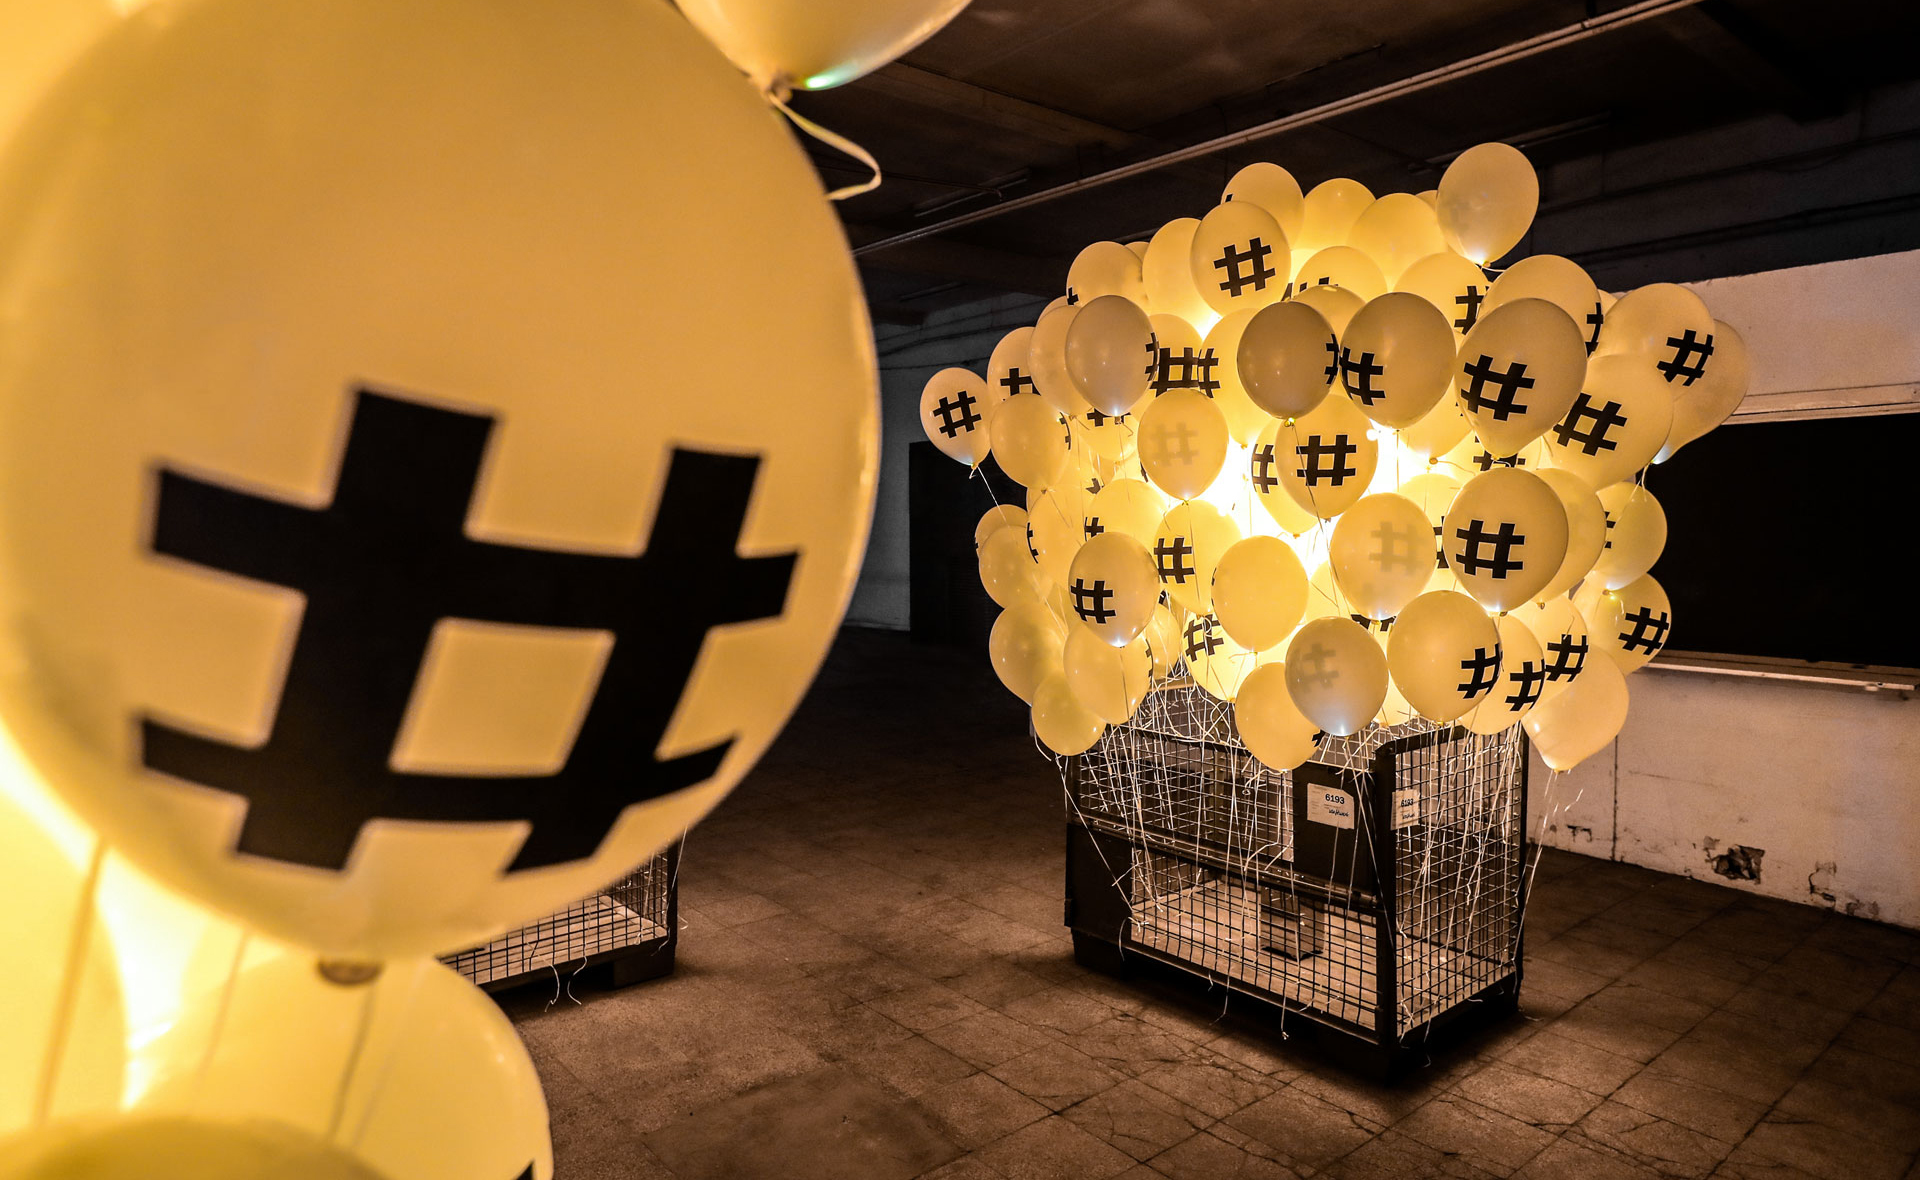 On the picture you can see many yellow balloons with a hash tag on it, which are attached to a mesh box.